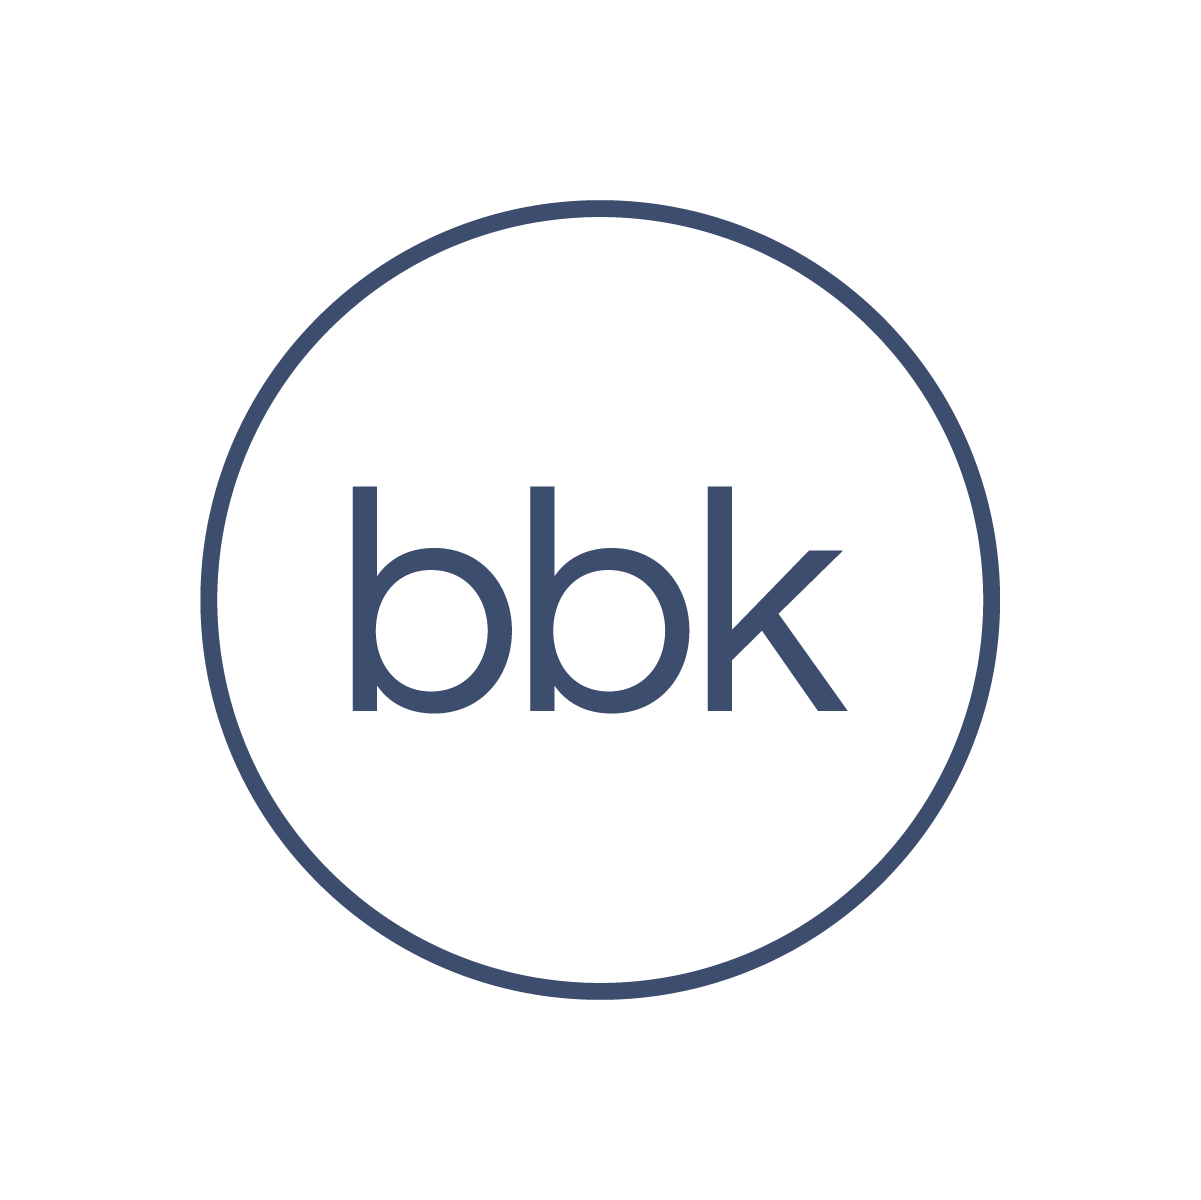 BBK_Circle Icon_Color.png